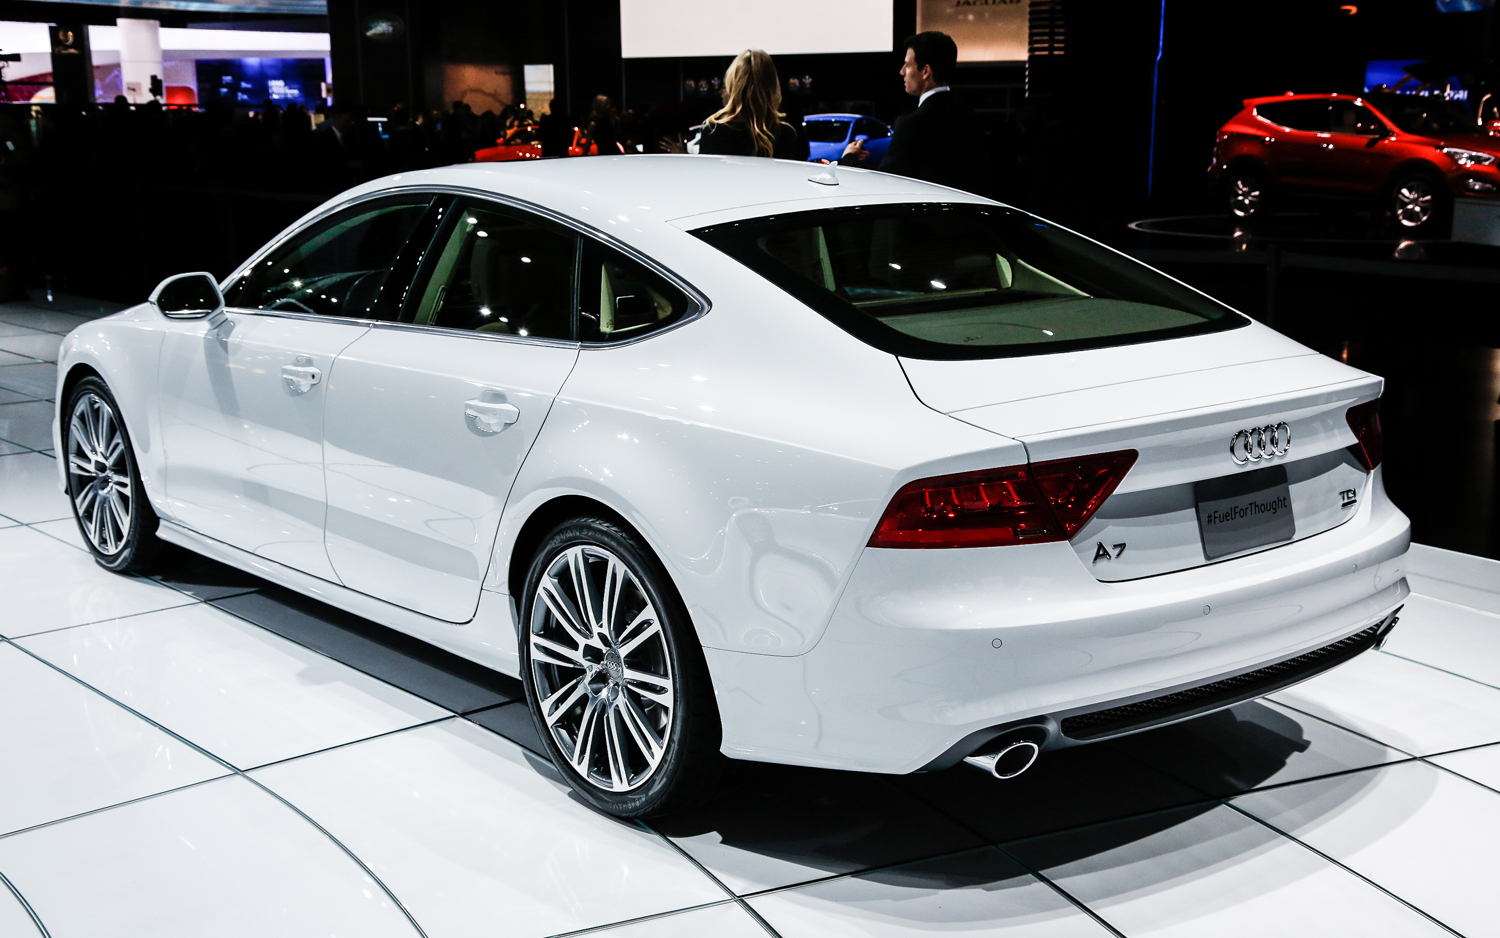 2014 audi a7 information and photos zombiedrive. Black Bedroom Furniture Sets. Home Design Ideas